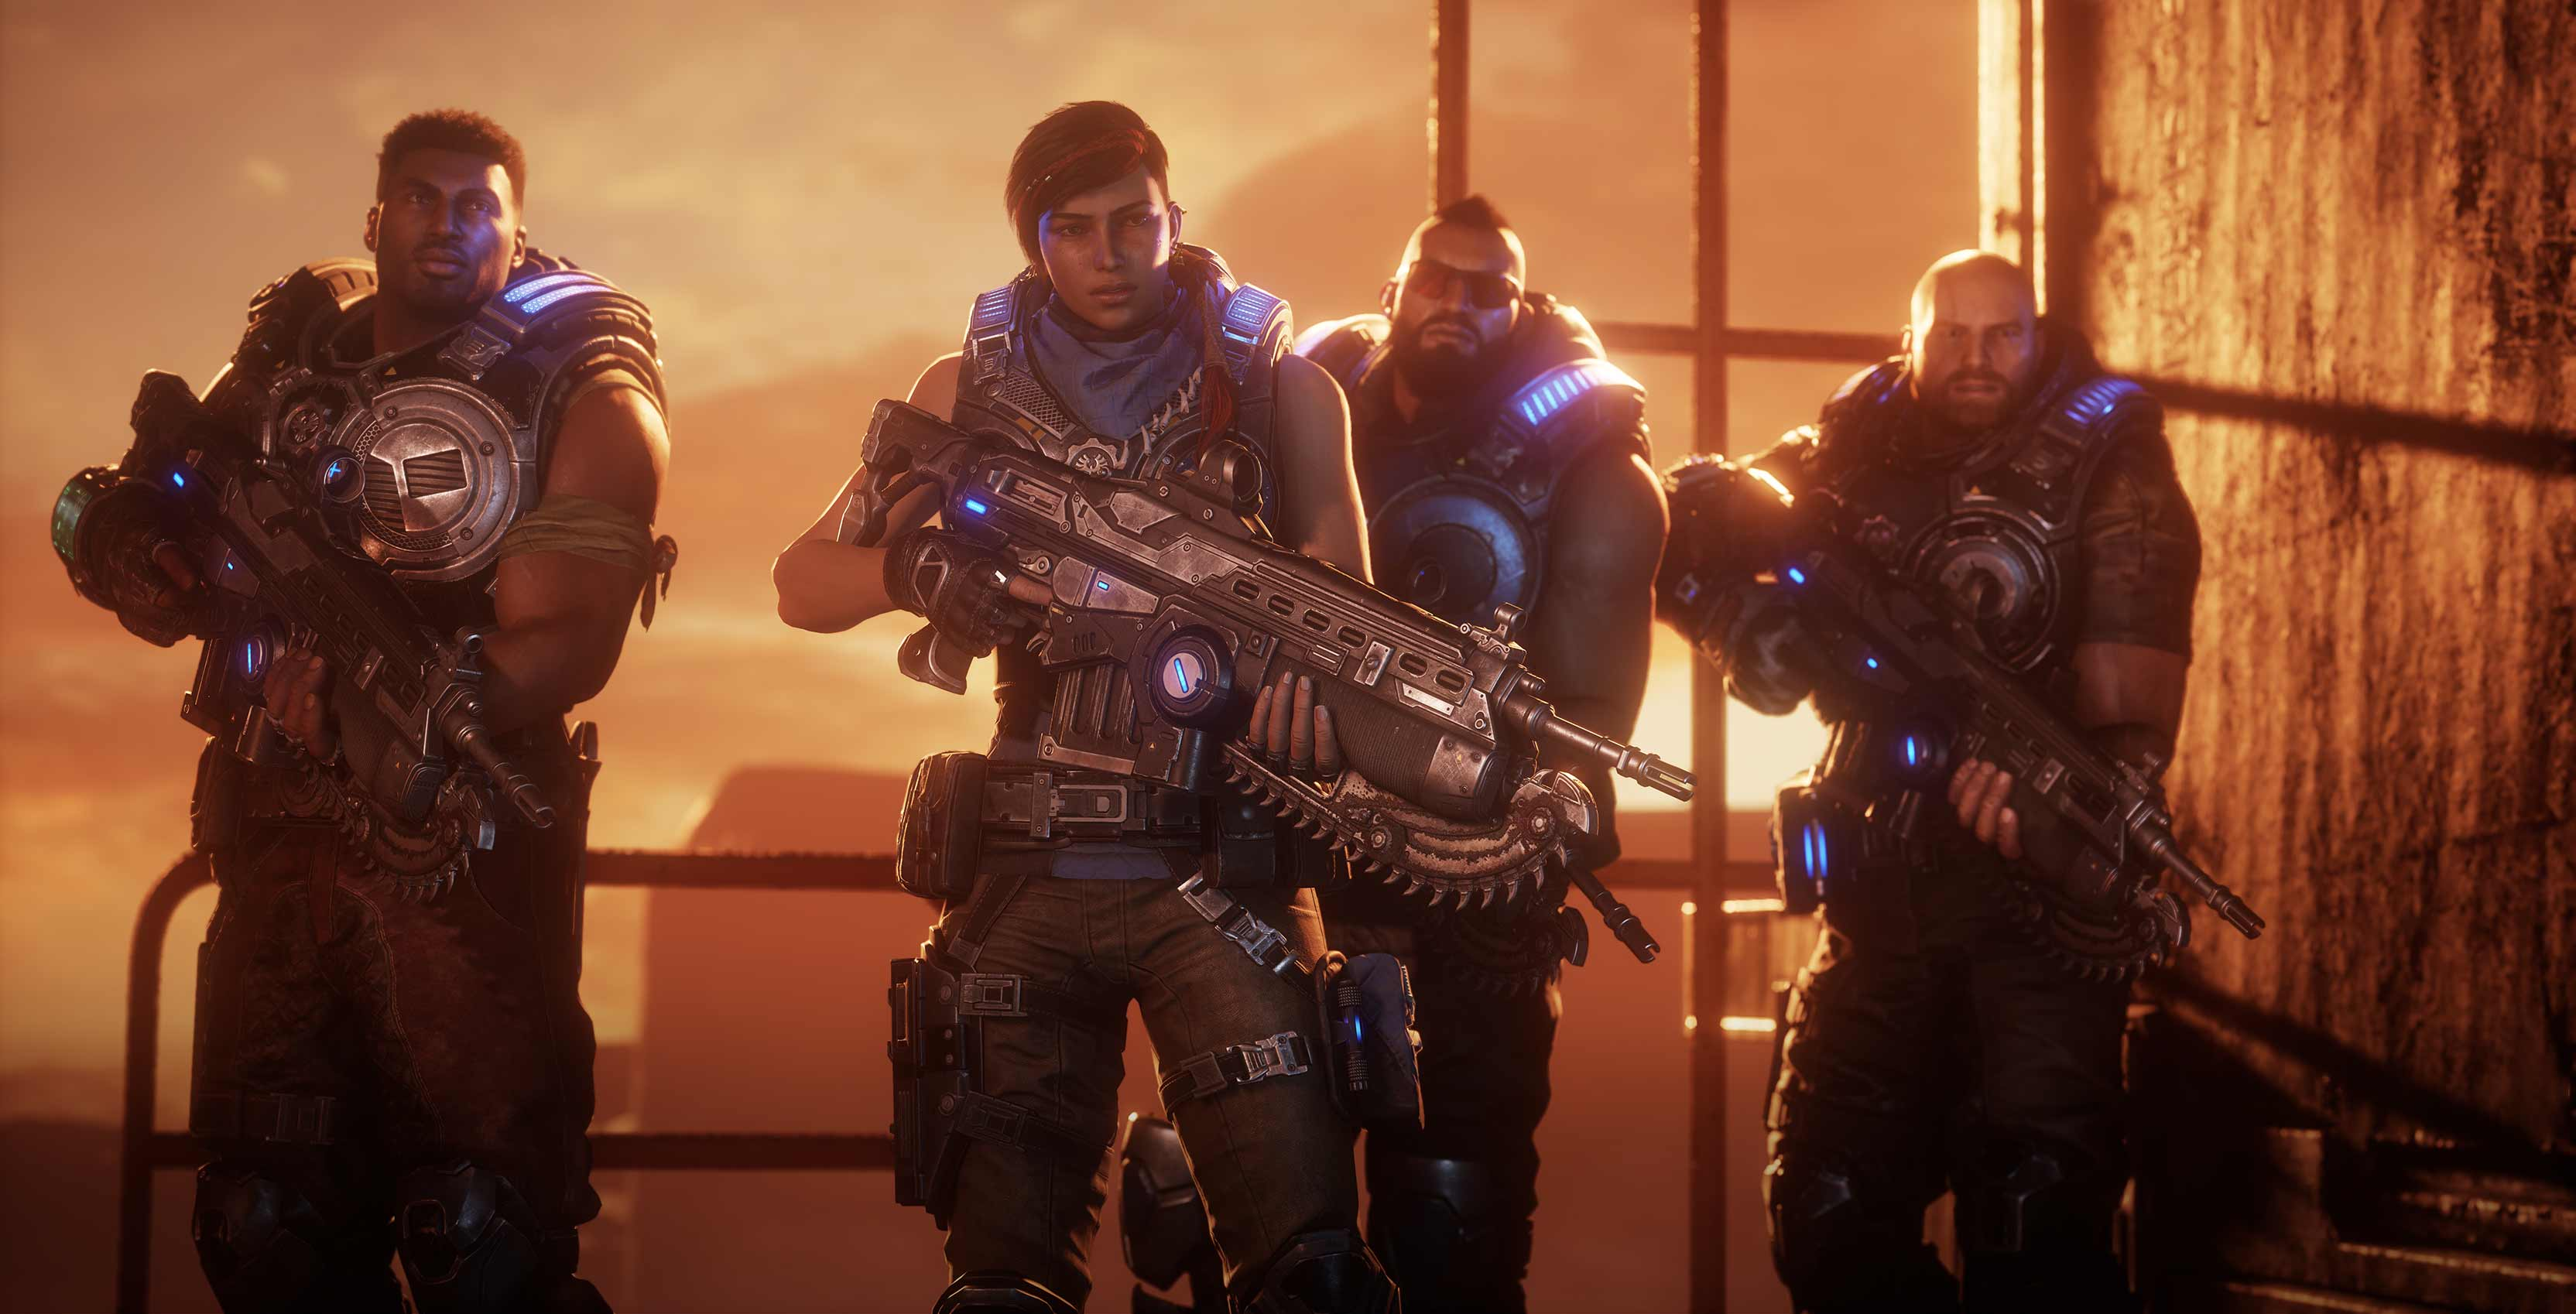 Vancouver-made Gears 5's campaign has won me over to the franchise